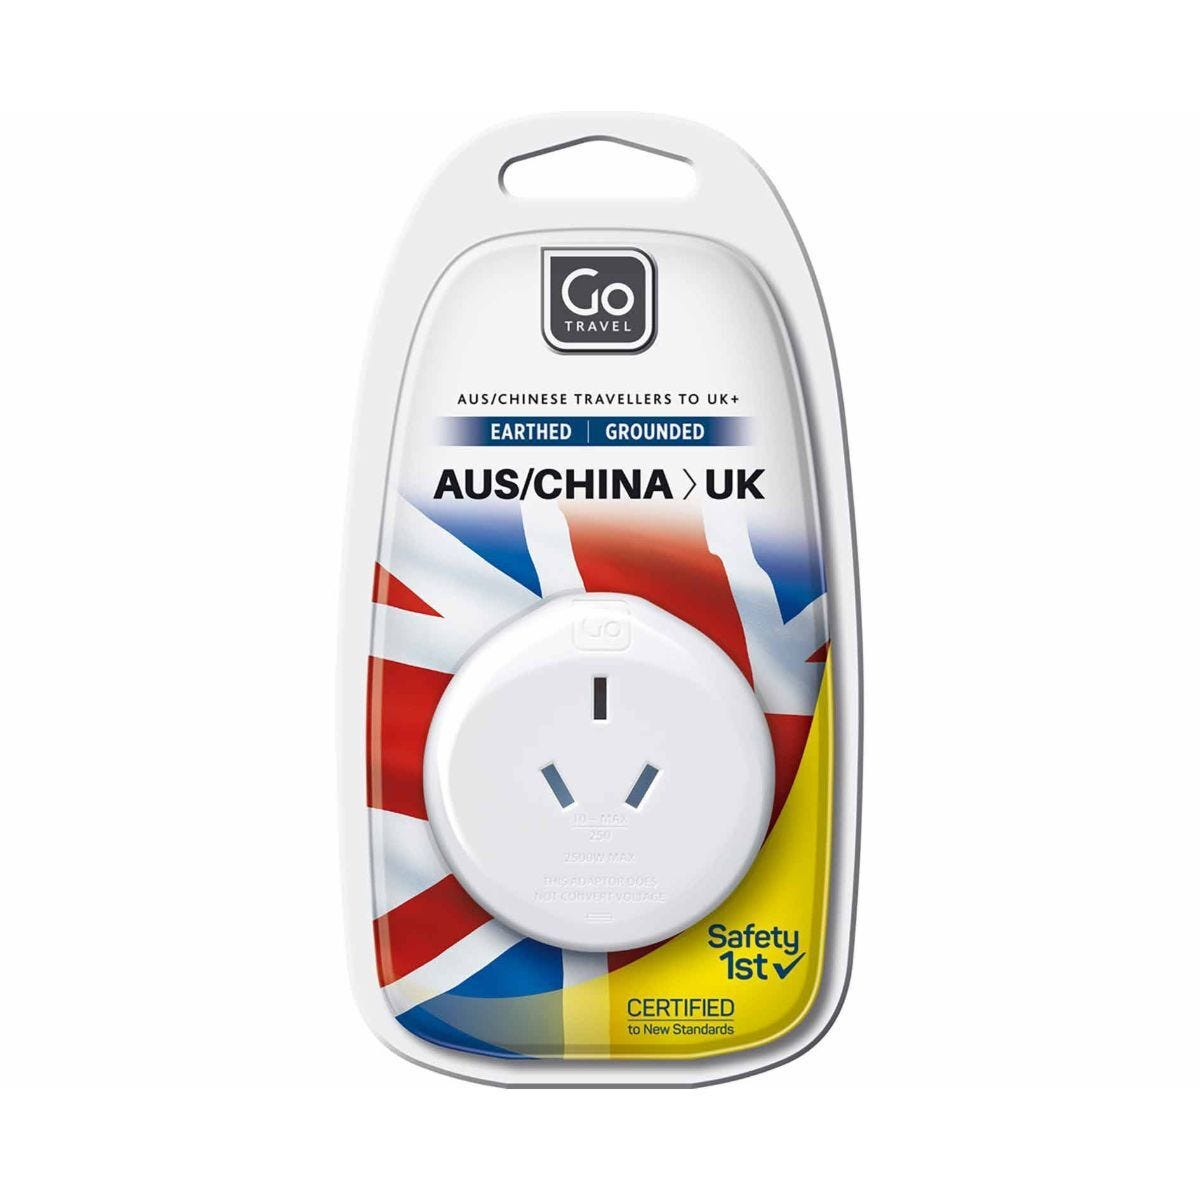 Go Travel Earthed Adapter Plug Australia and China Travellers to UK